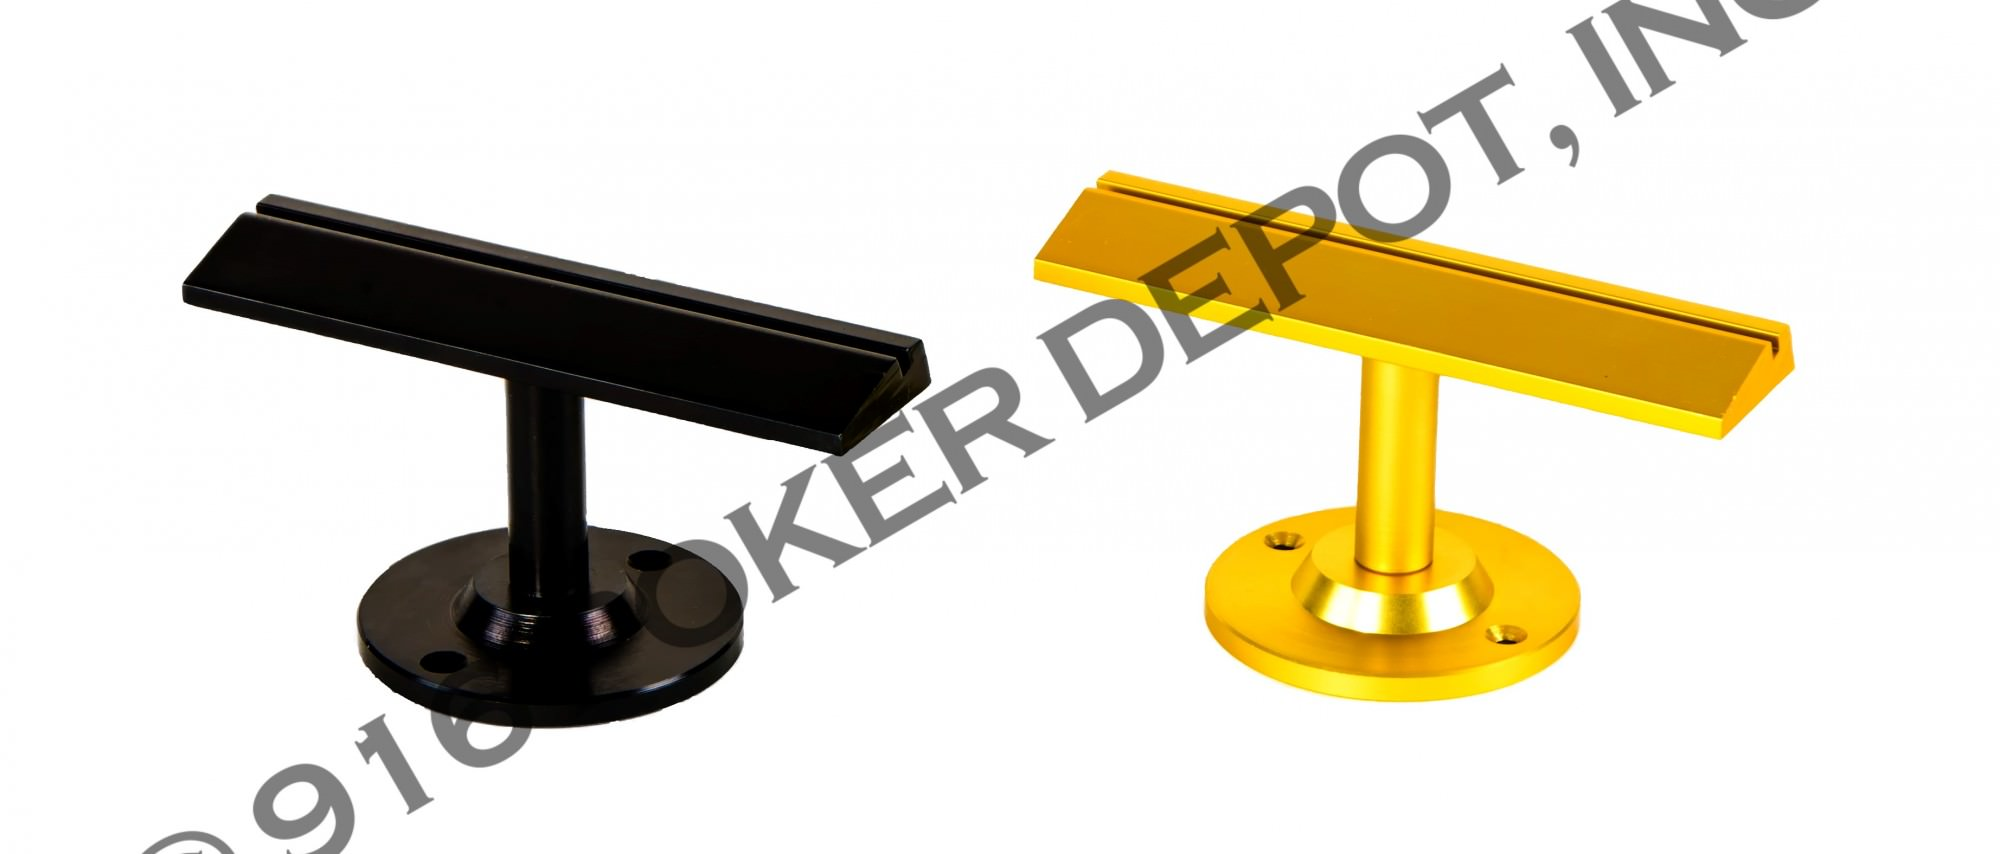 Pedestal Sign Holder s